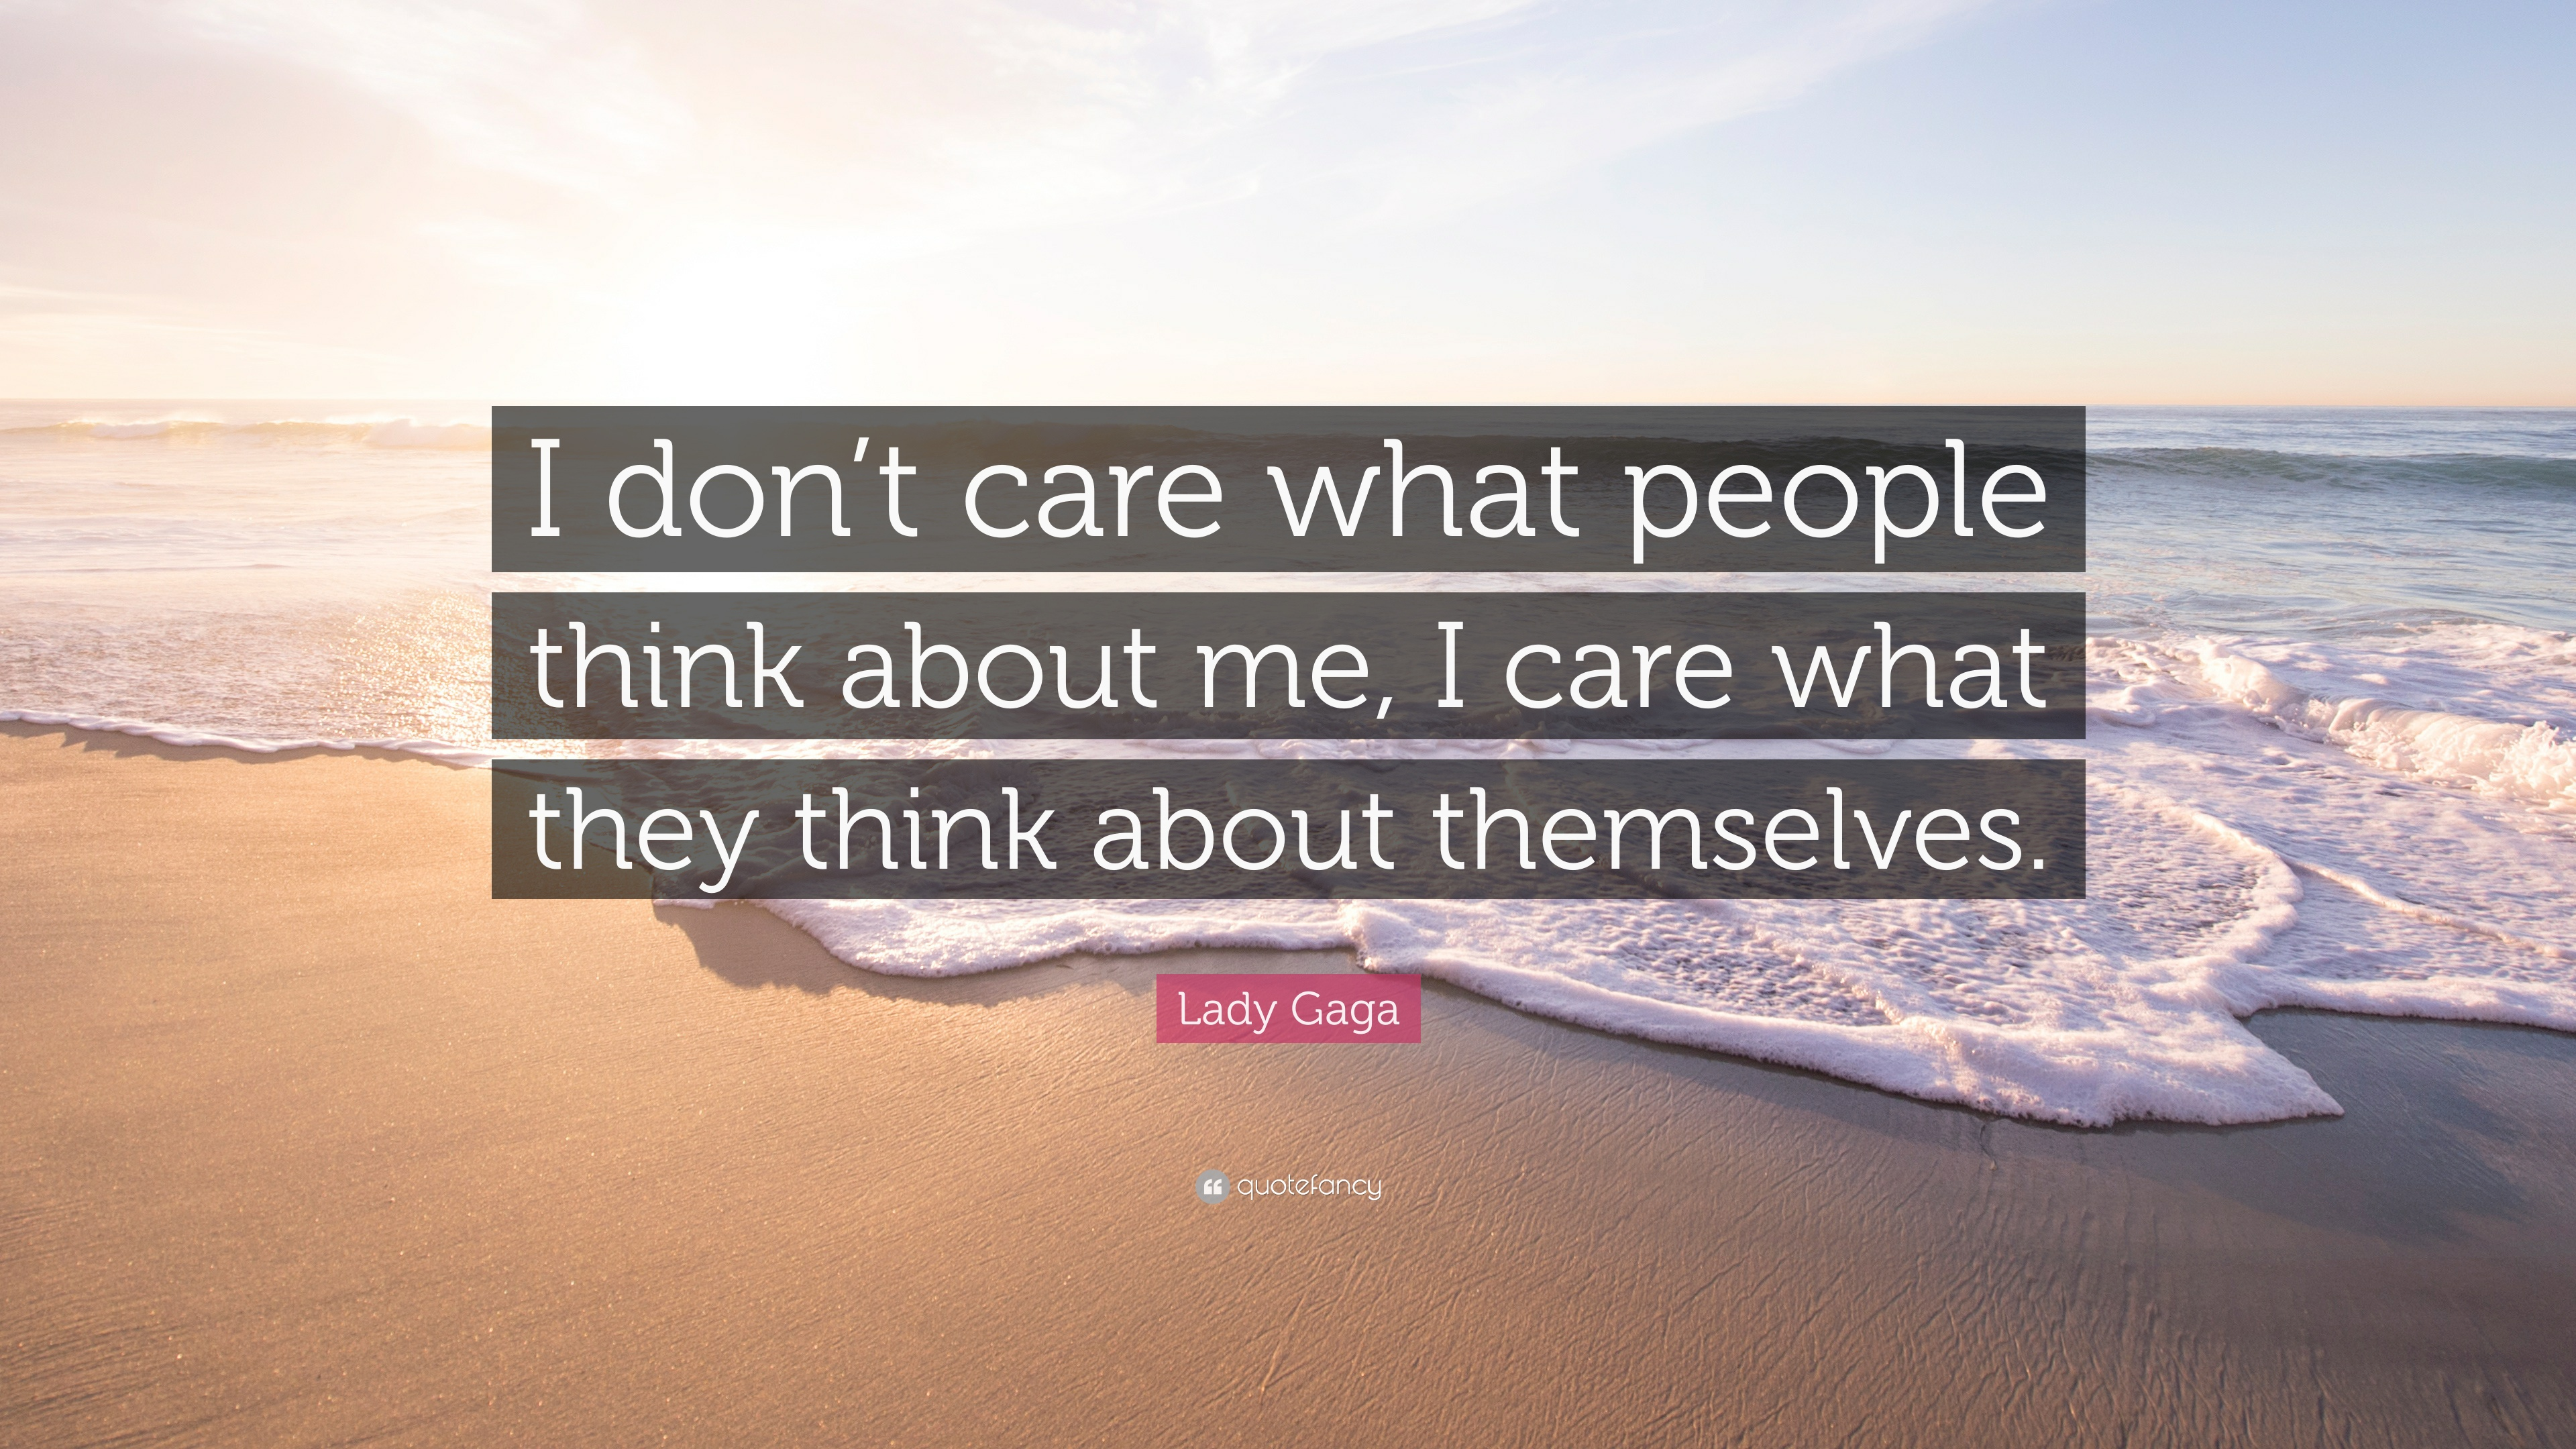 Lady Gaga Quote: U201cI Donu0027t Care What People Think About Me,